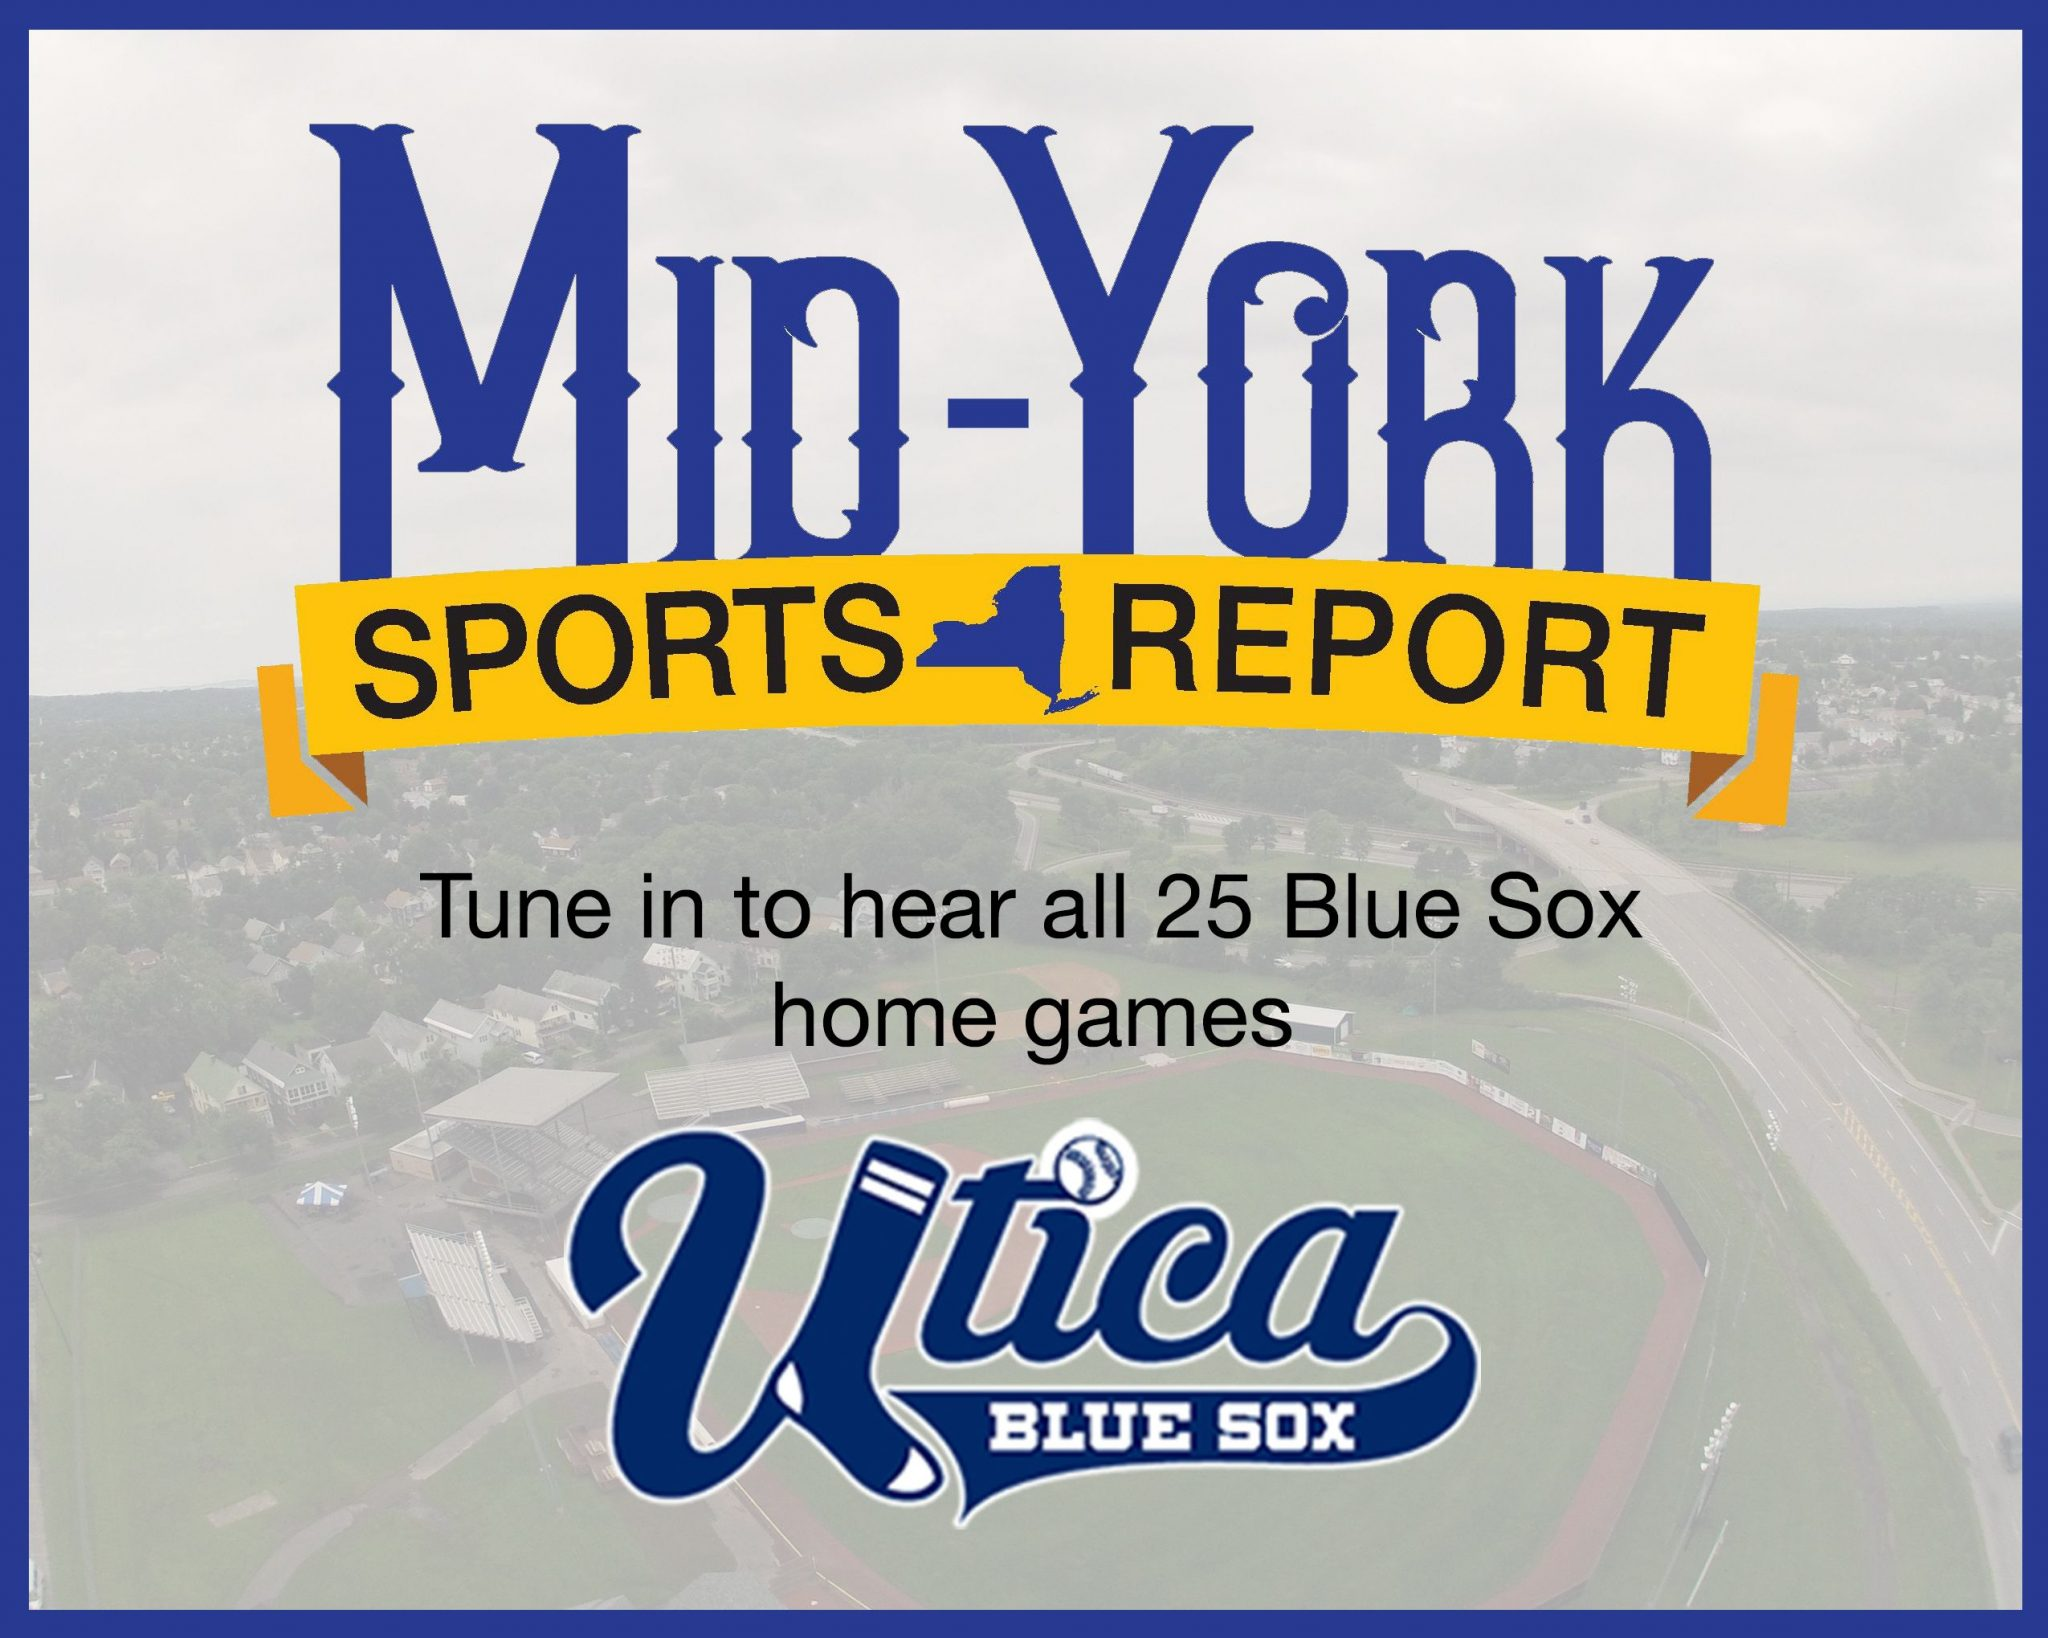 Mid-York Sports Report